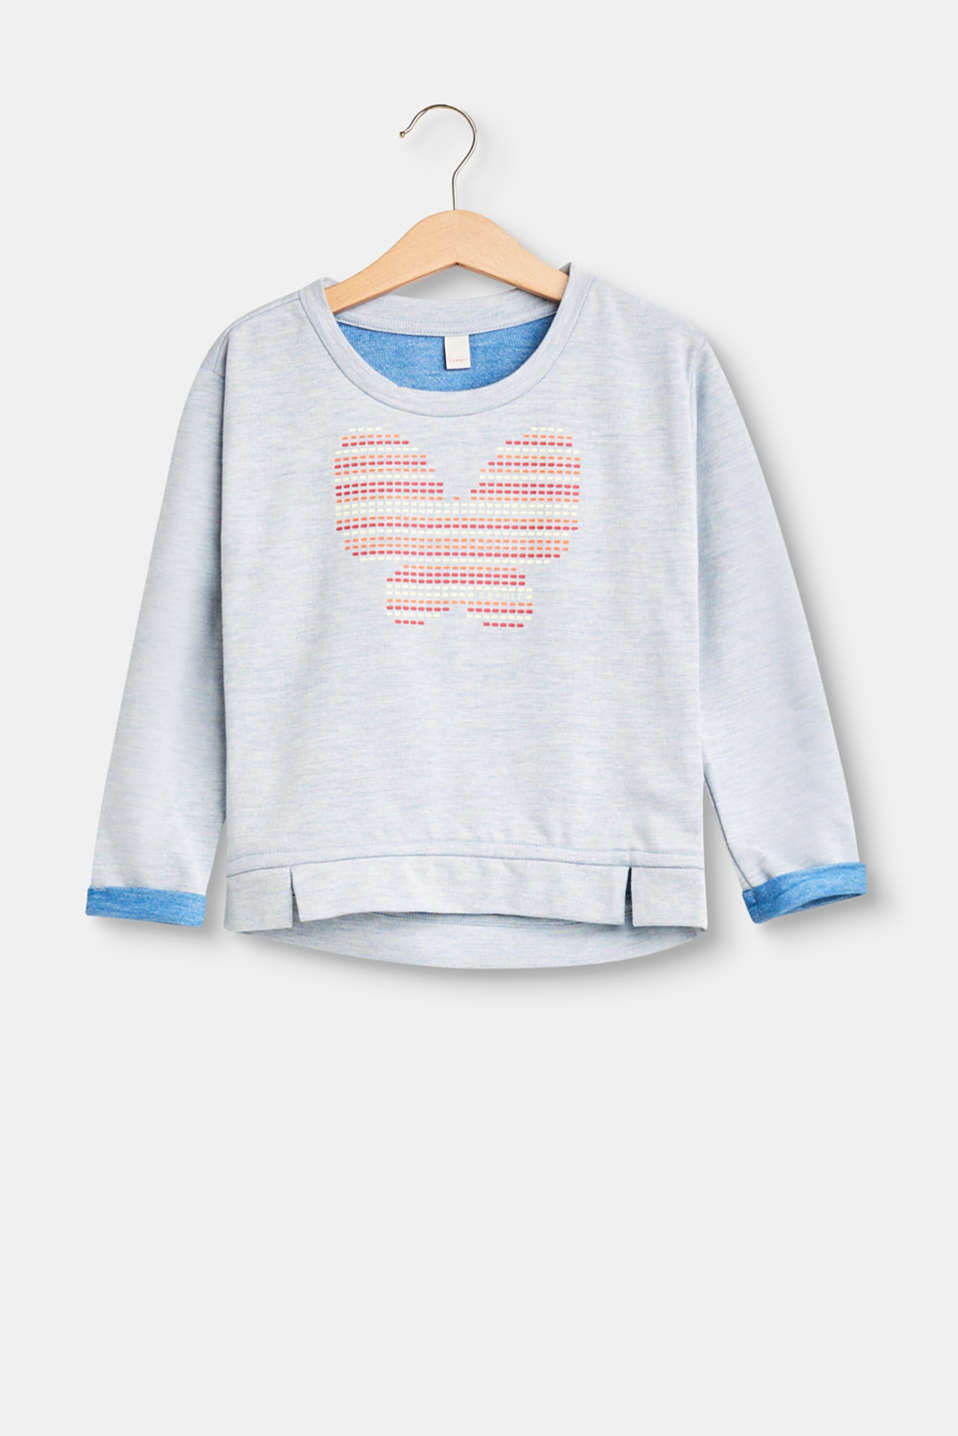 Esprit - Melange sweatshirt with a butterfly print